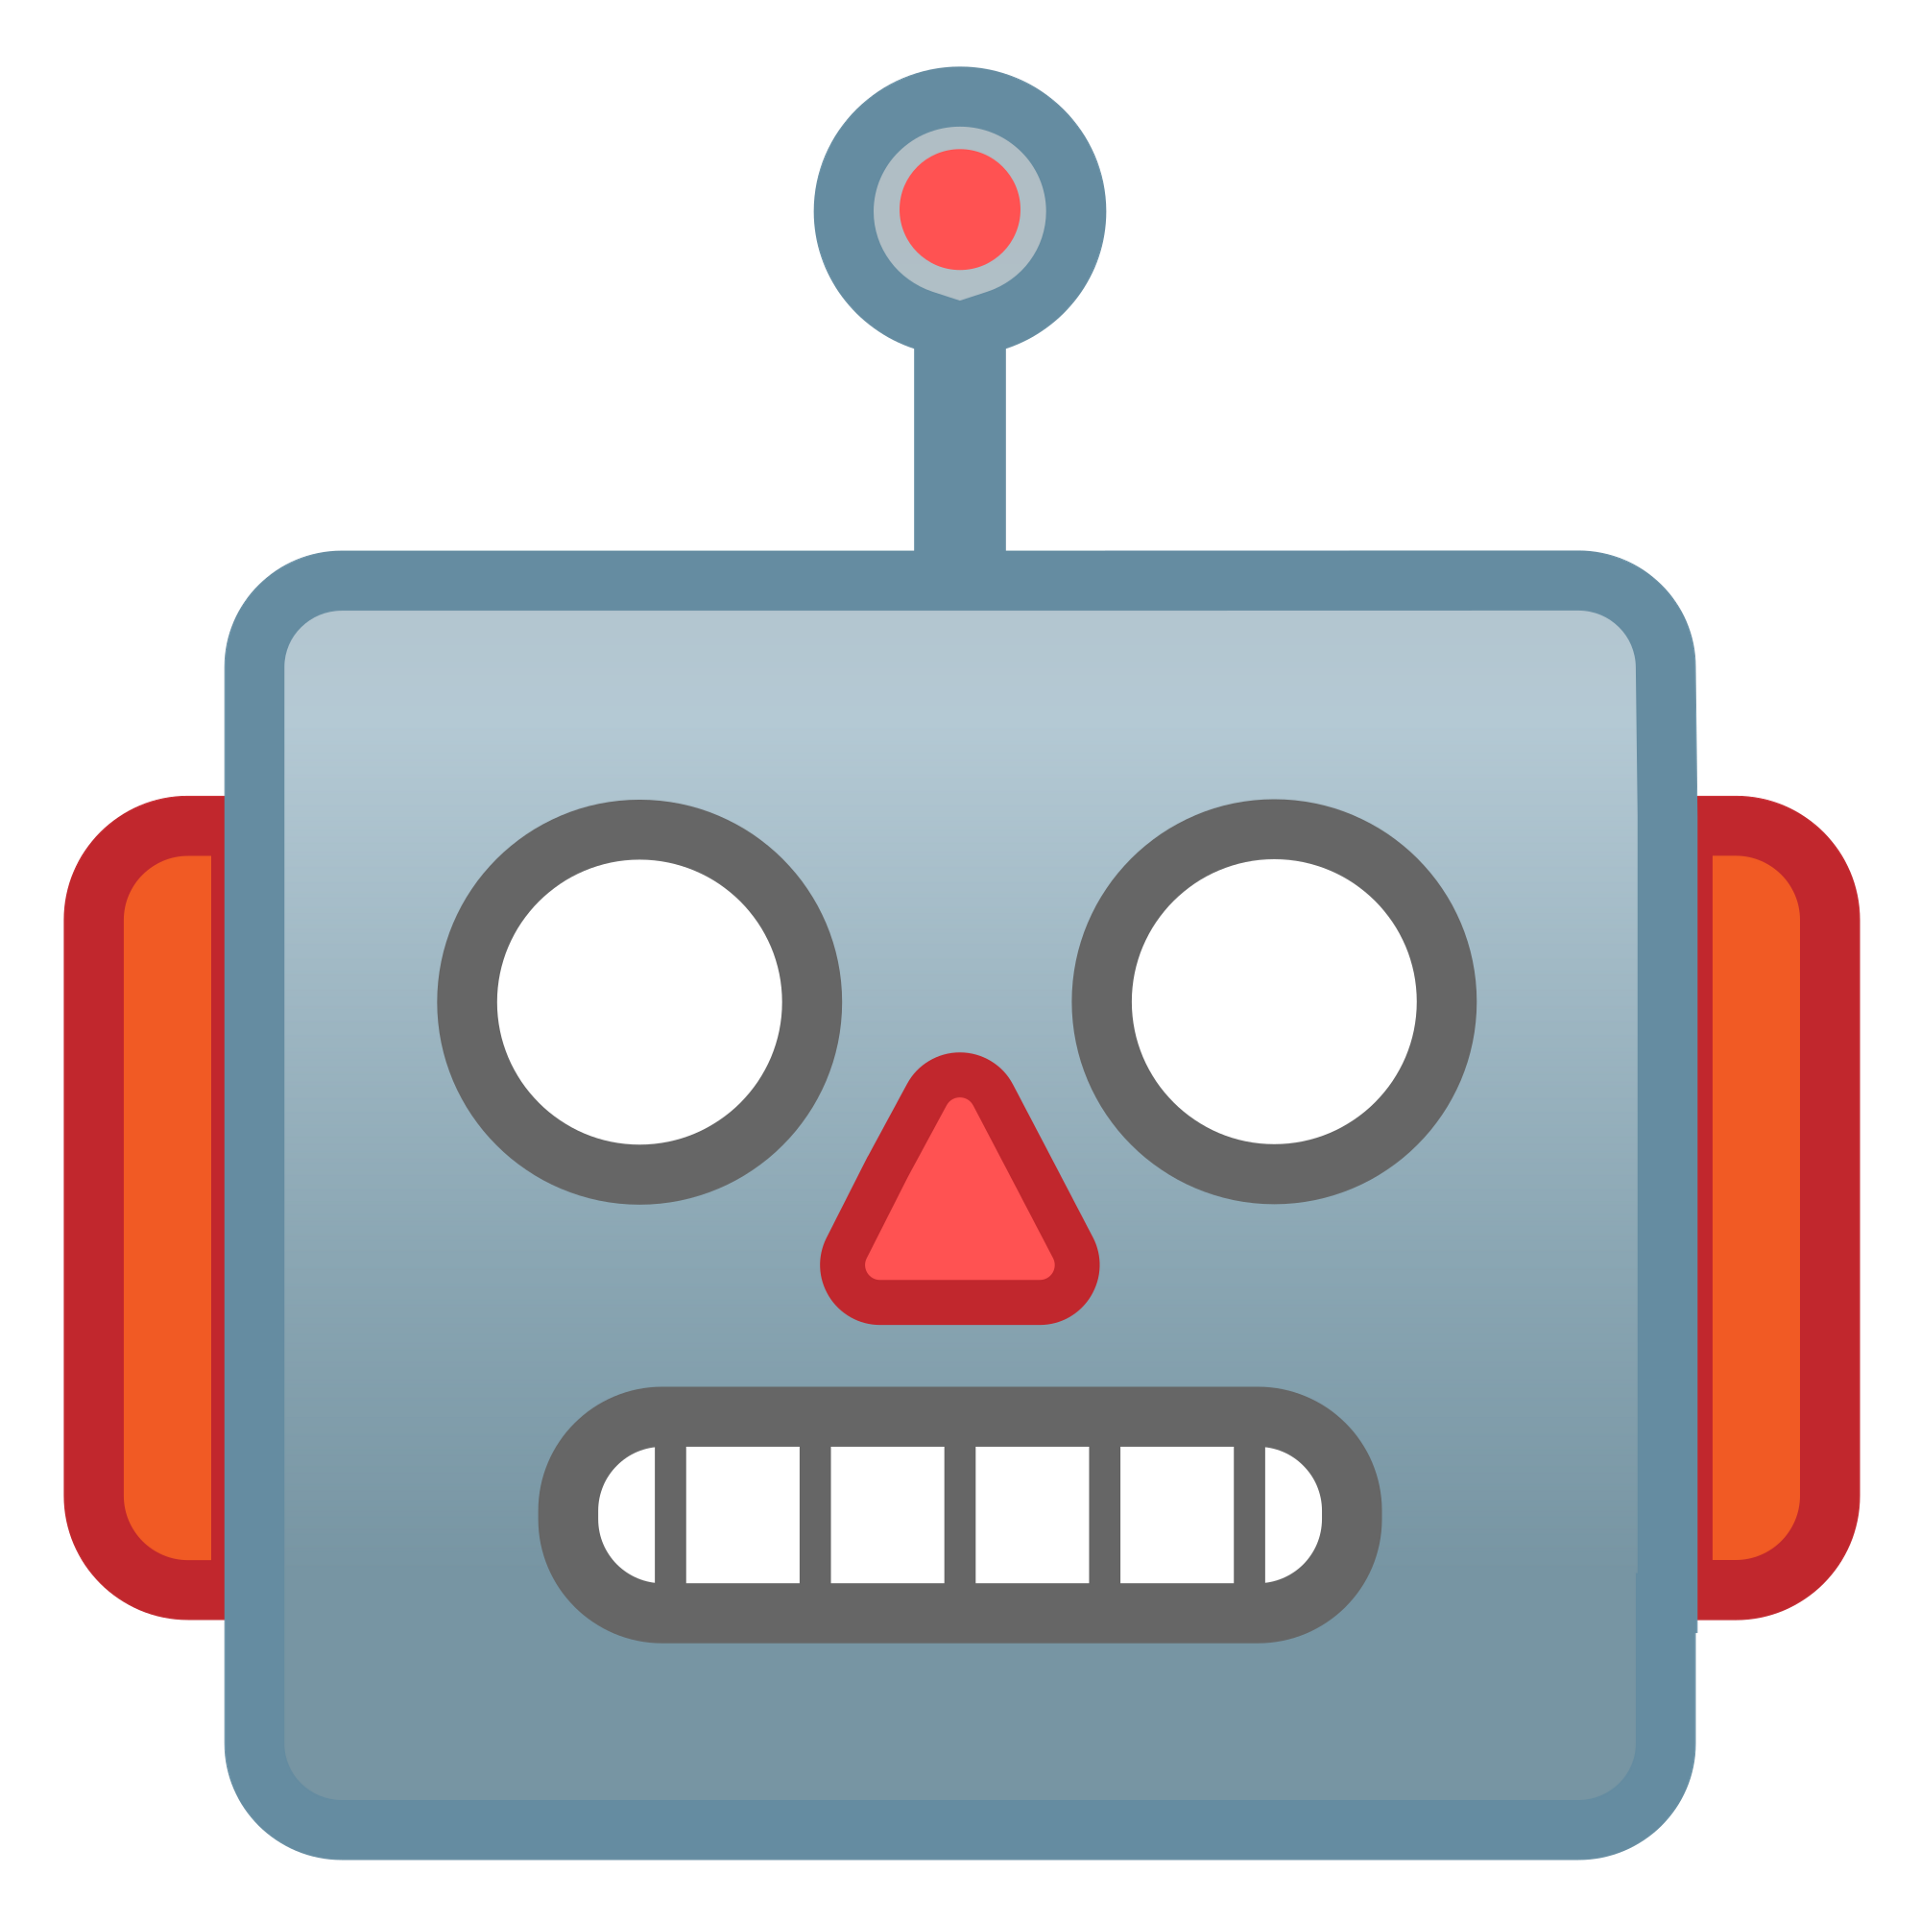 A tale of bots. Important clipart gentle reminder